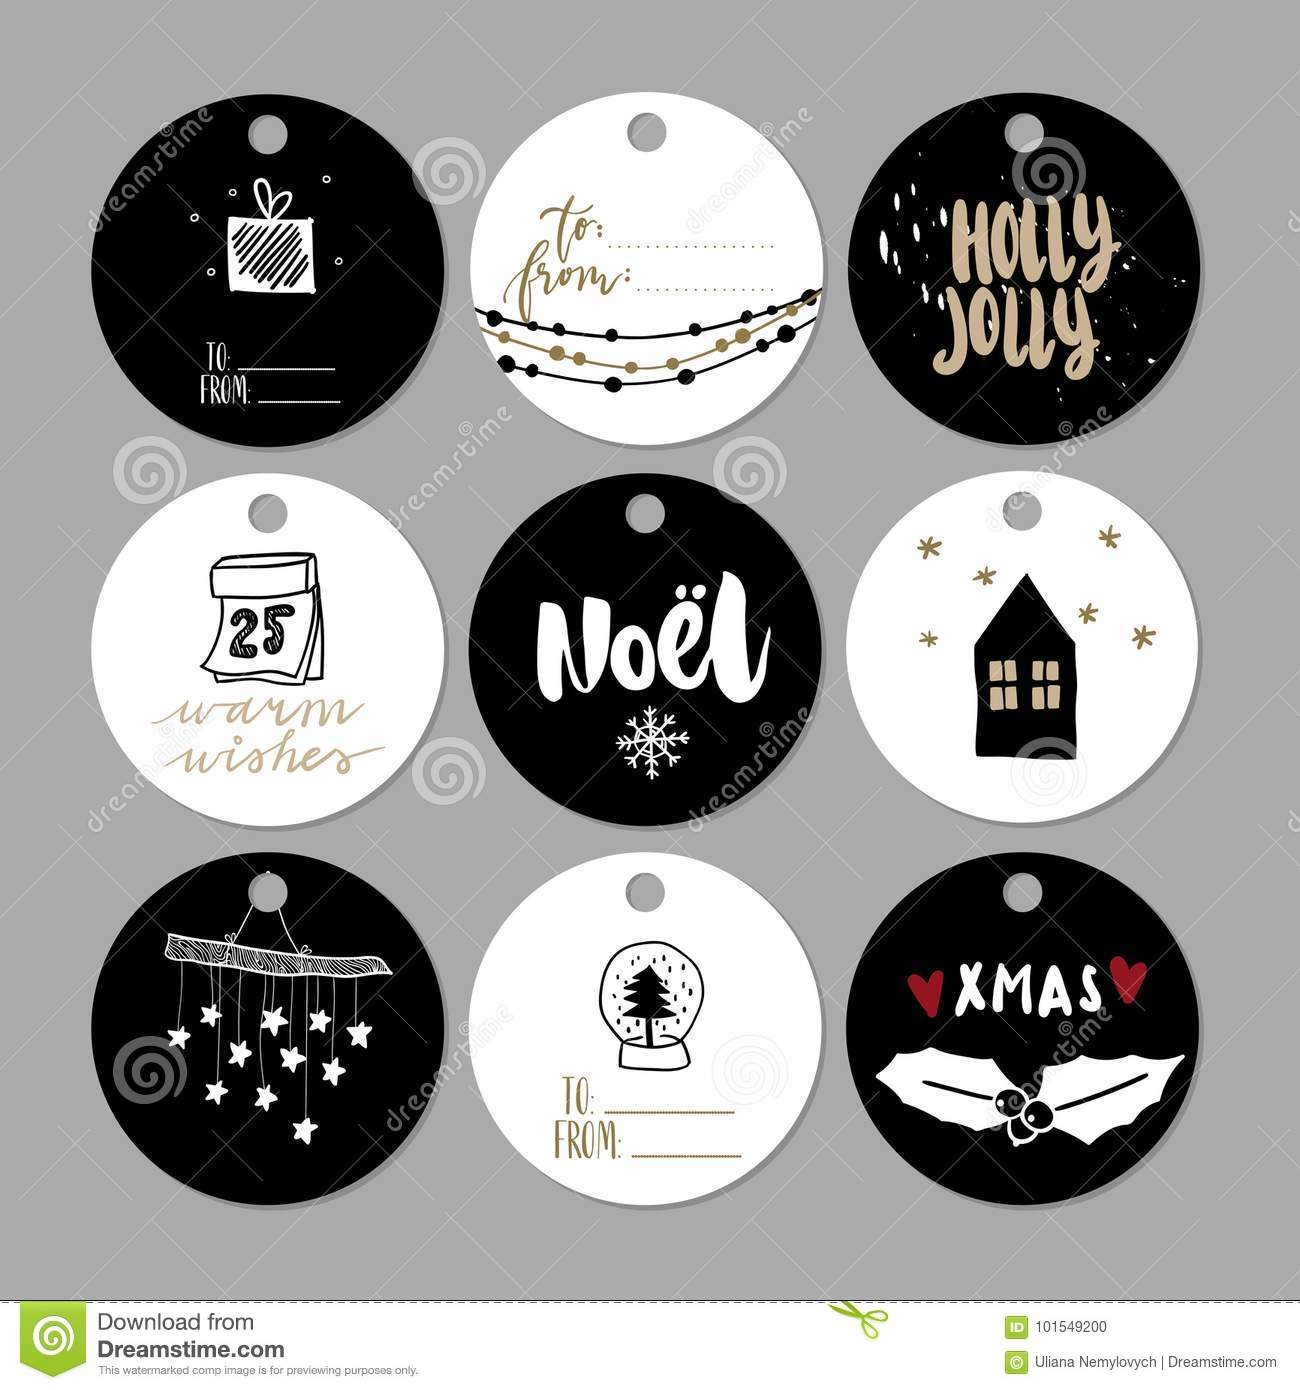 image relating to Cute Gift Tags Printable named Fastened Of Doodle Xmas Reward Tags. Vector Hand Drawn Lovable